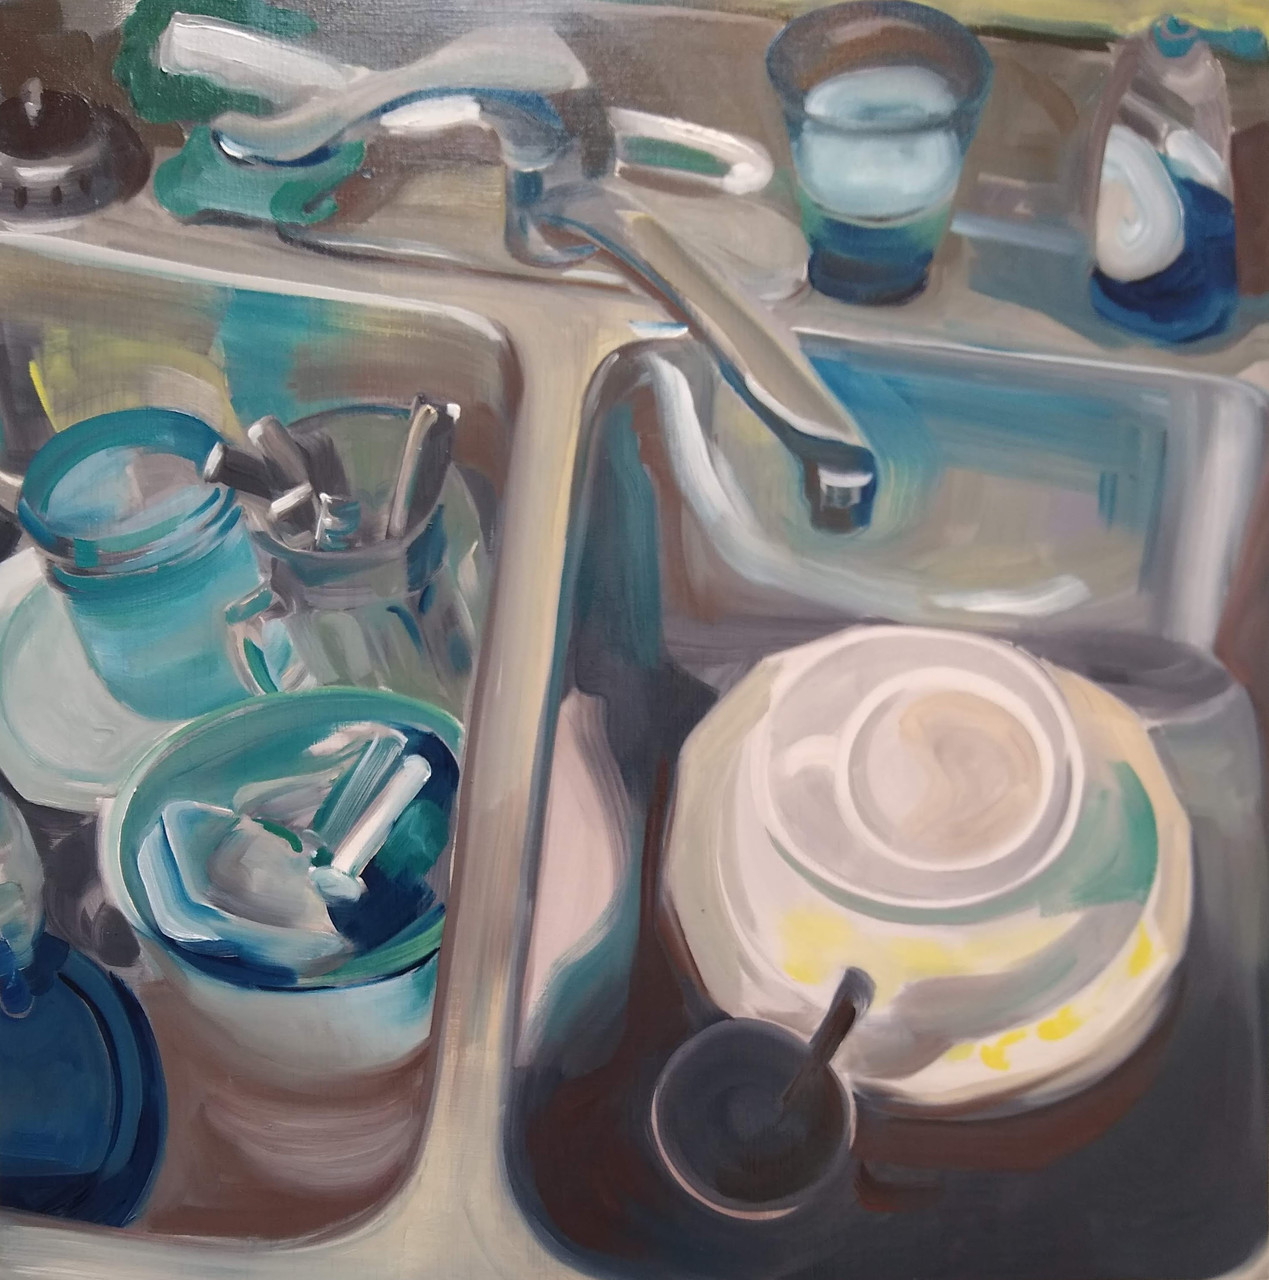 Countertop Still Life 2/16/20 painting by Noël Ash.